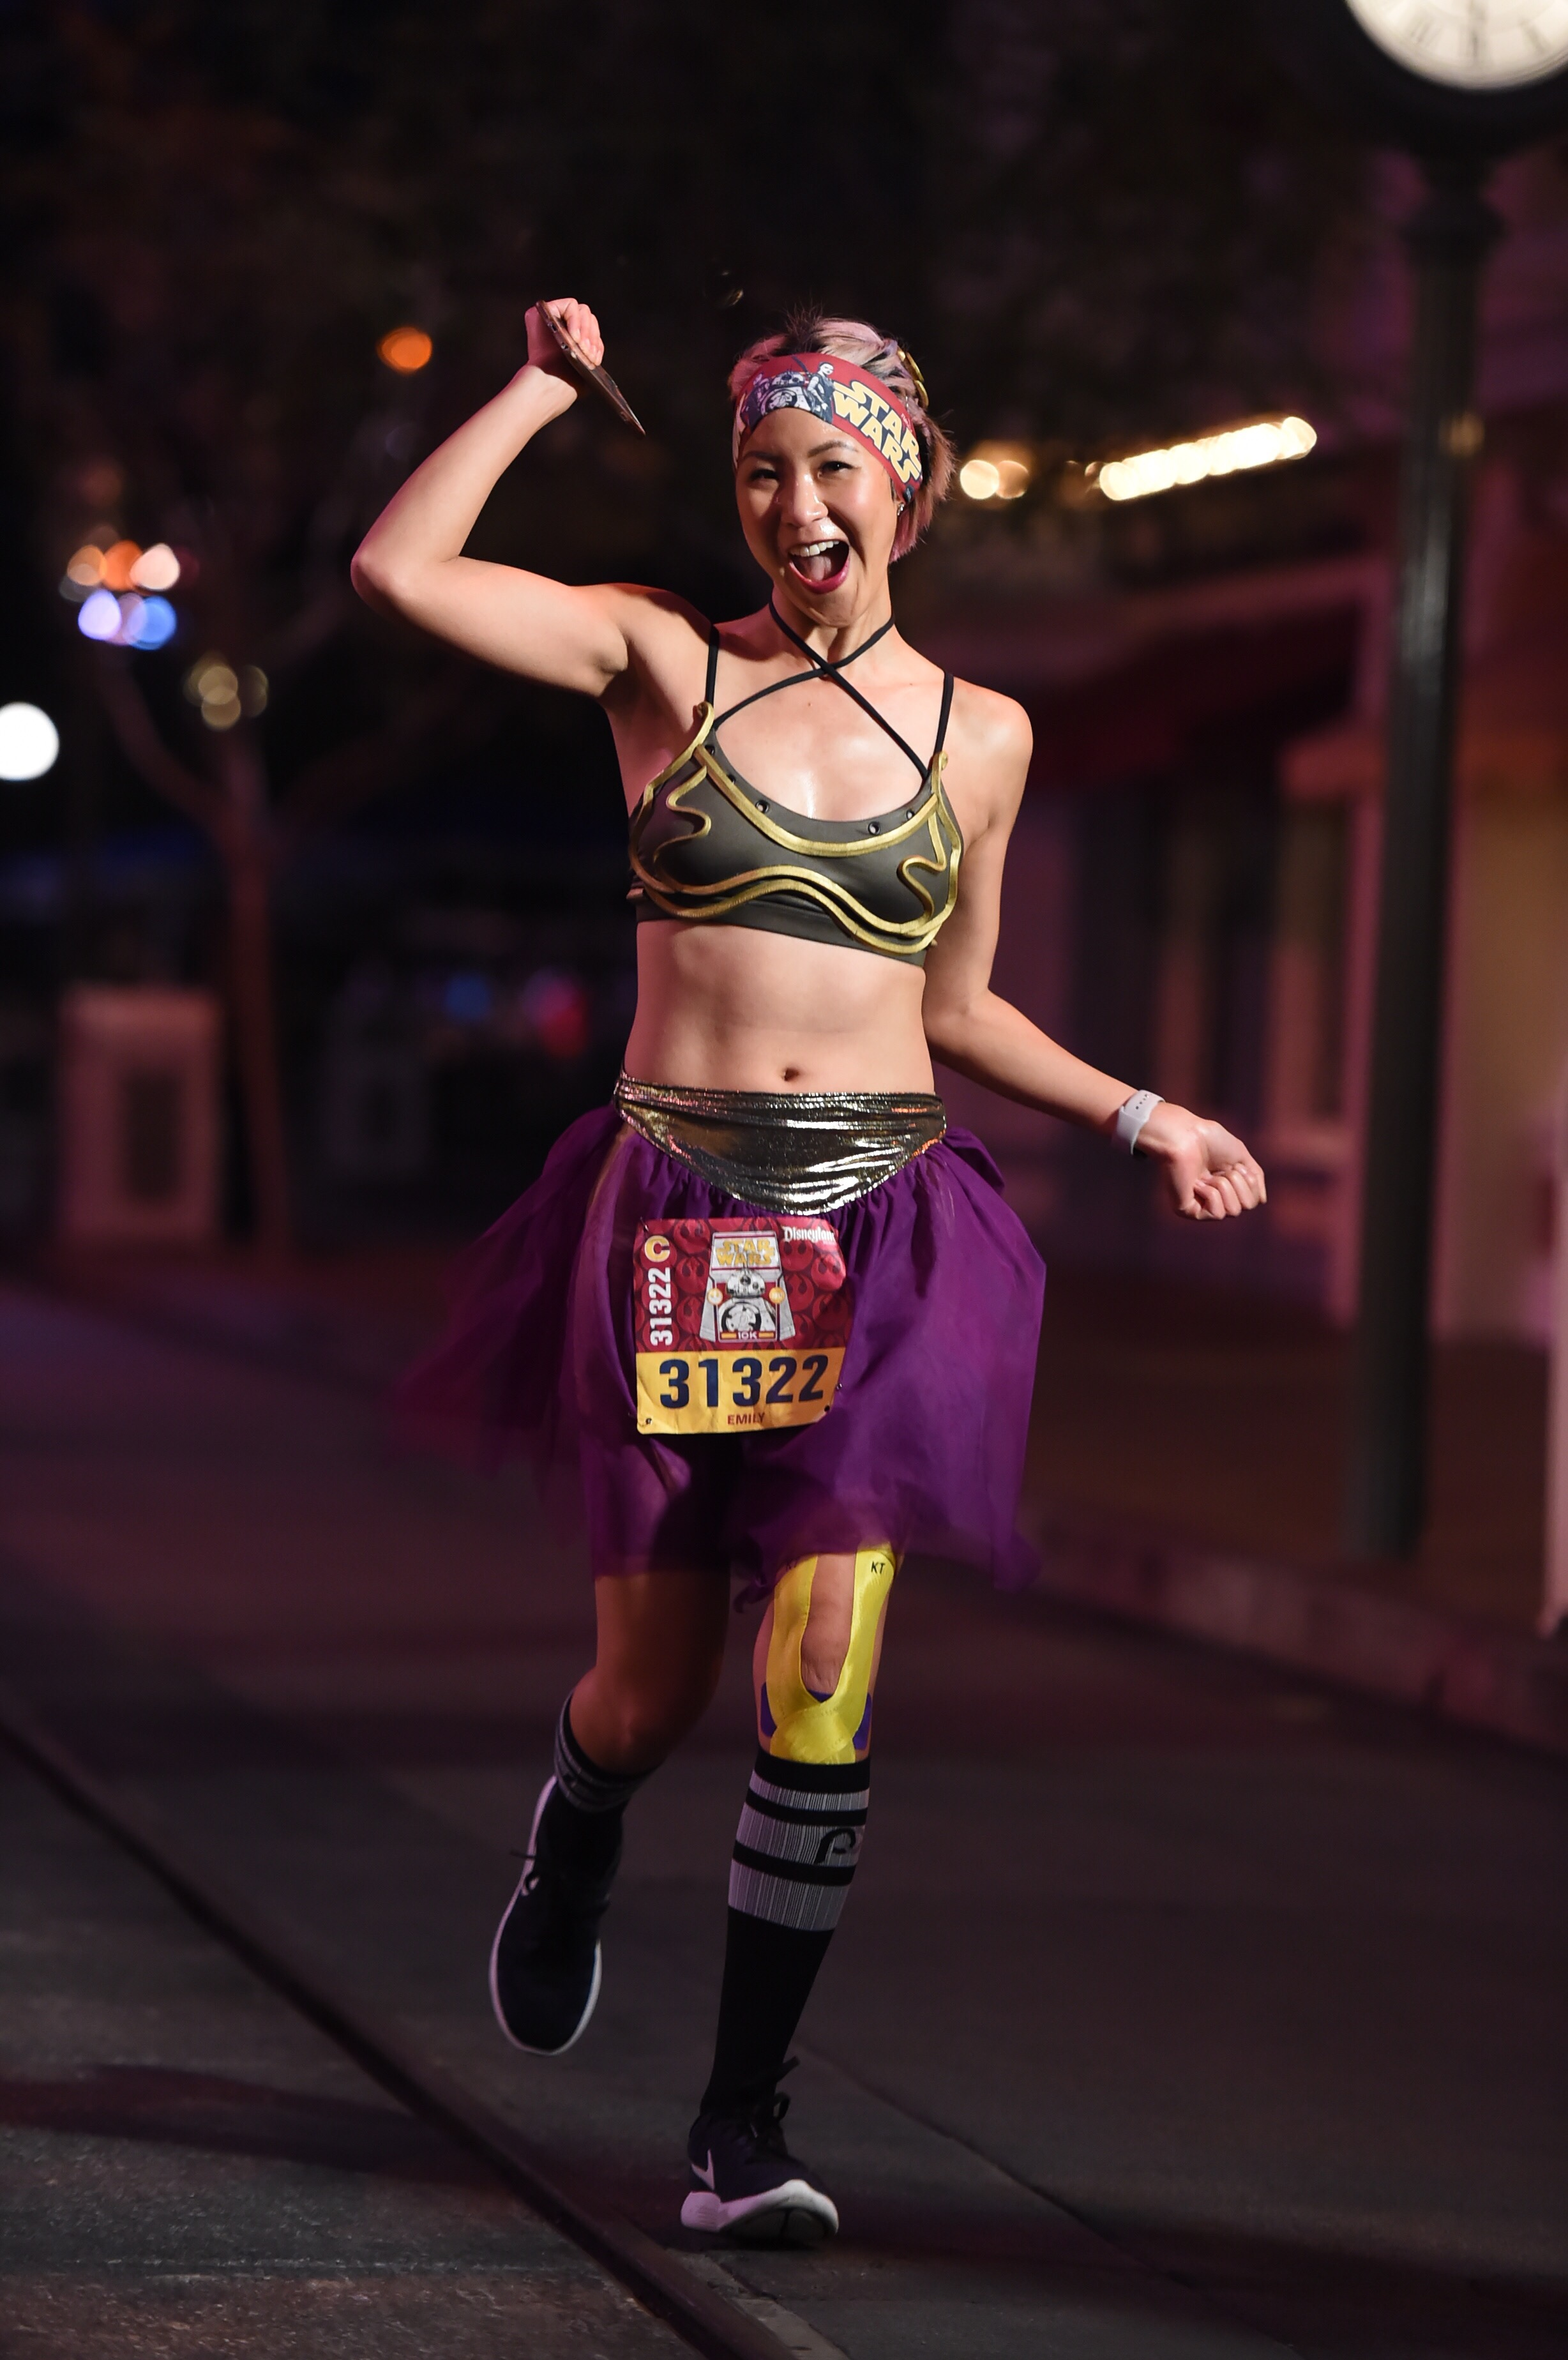 Star Wars 10k 2017 - slave leia running outfit